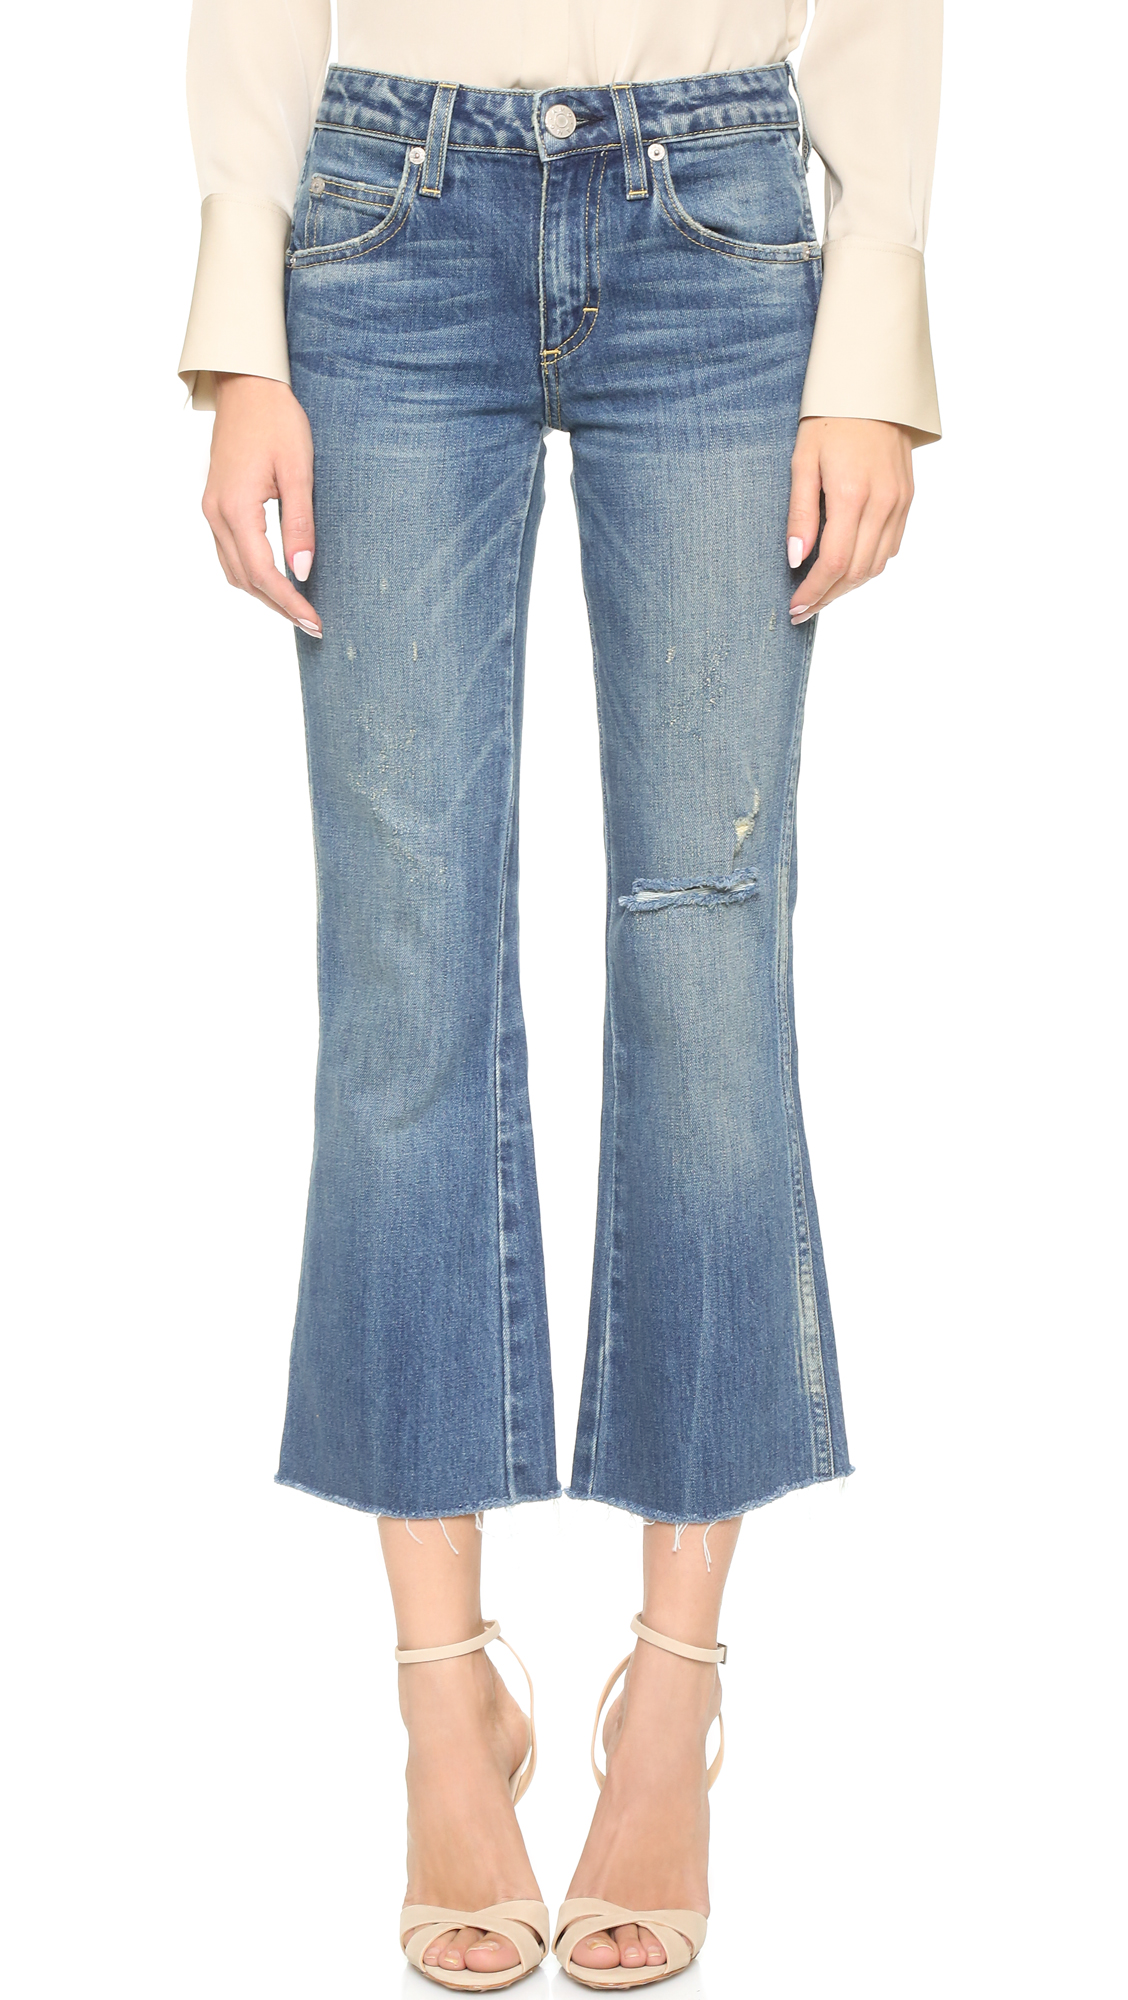 Heavily faded AMO flare jeans have vintage appeal, with a high rise and raw, cropped hems. Shredded holes and frayed spots complement the favorite pair feel. 5 pocket styling. Button closure and zip fly. Fabric: Stretch denim. 98%